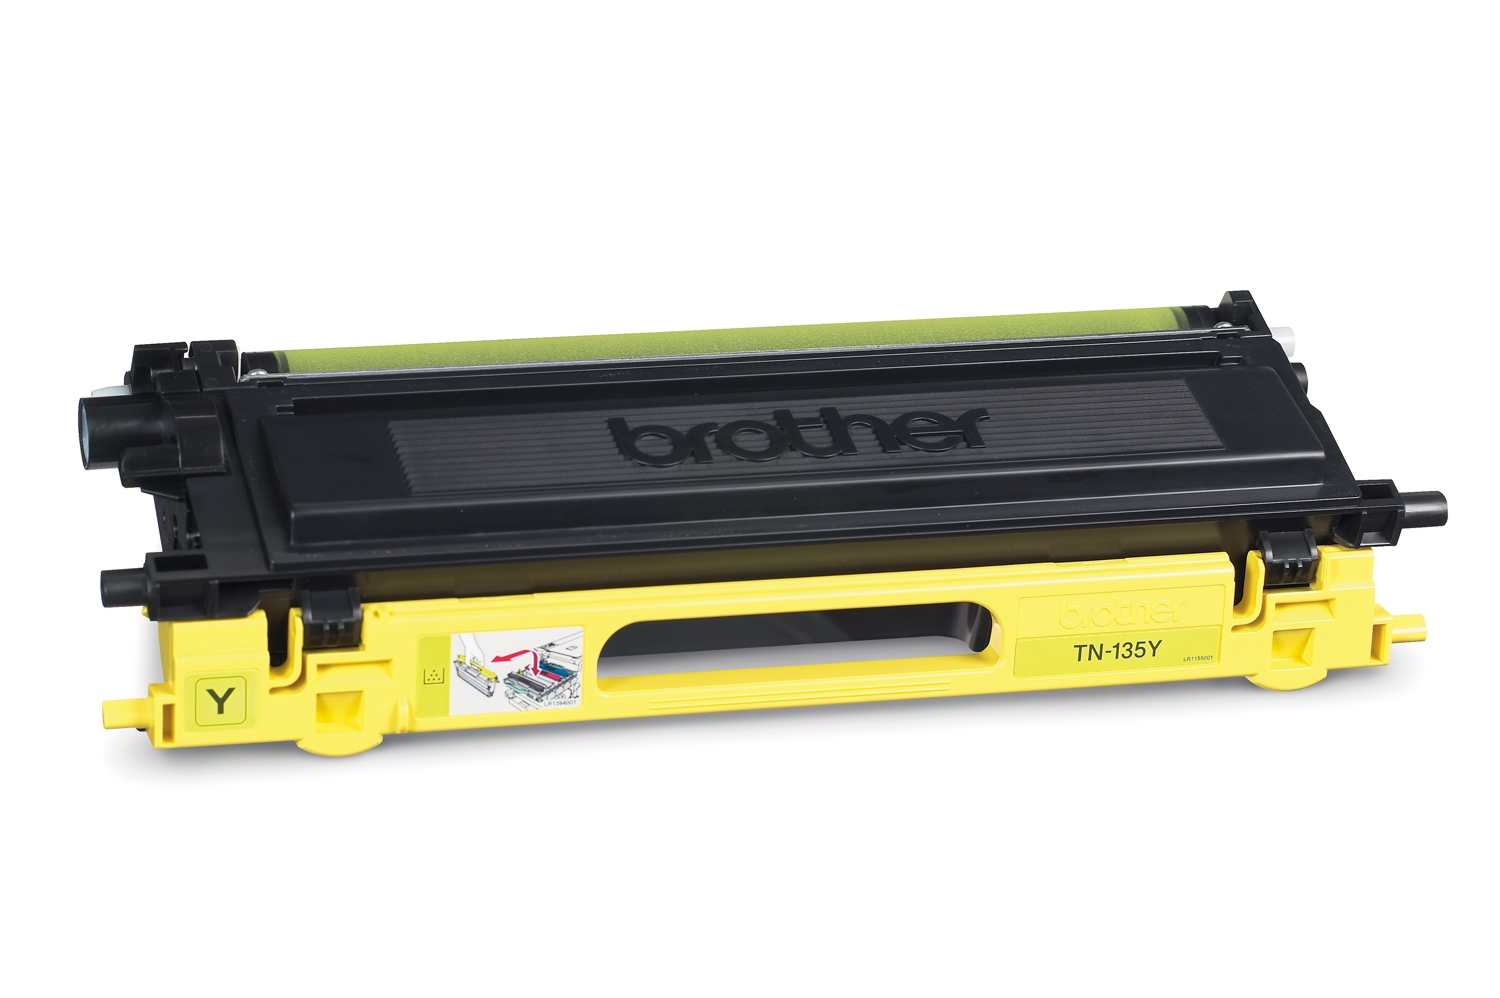 Remanufactured Brother TN135Y Toner Cartridge Yellow 4K TN135Y - rem01